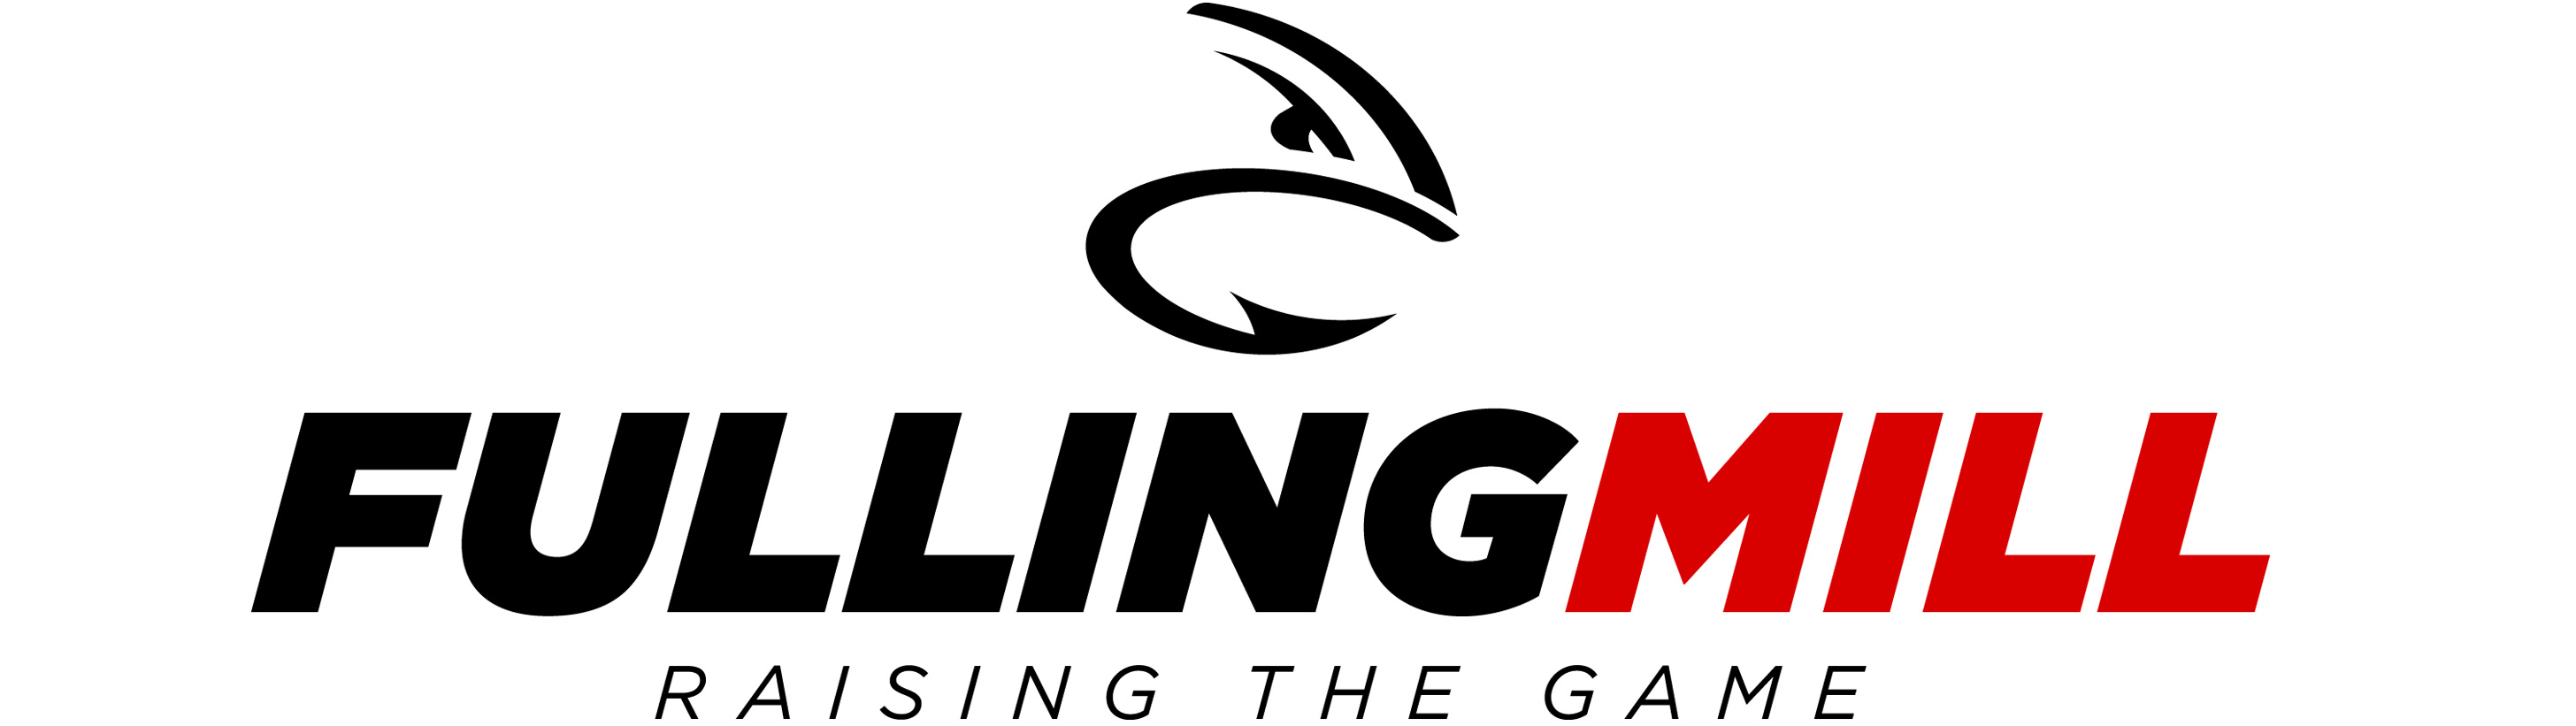 Fulling Mill Fly Fishing llc logo